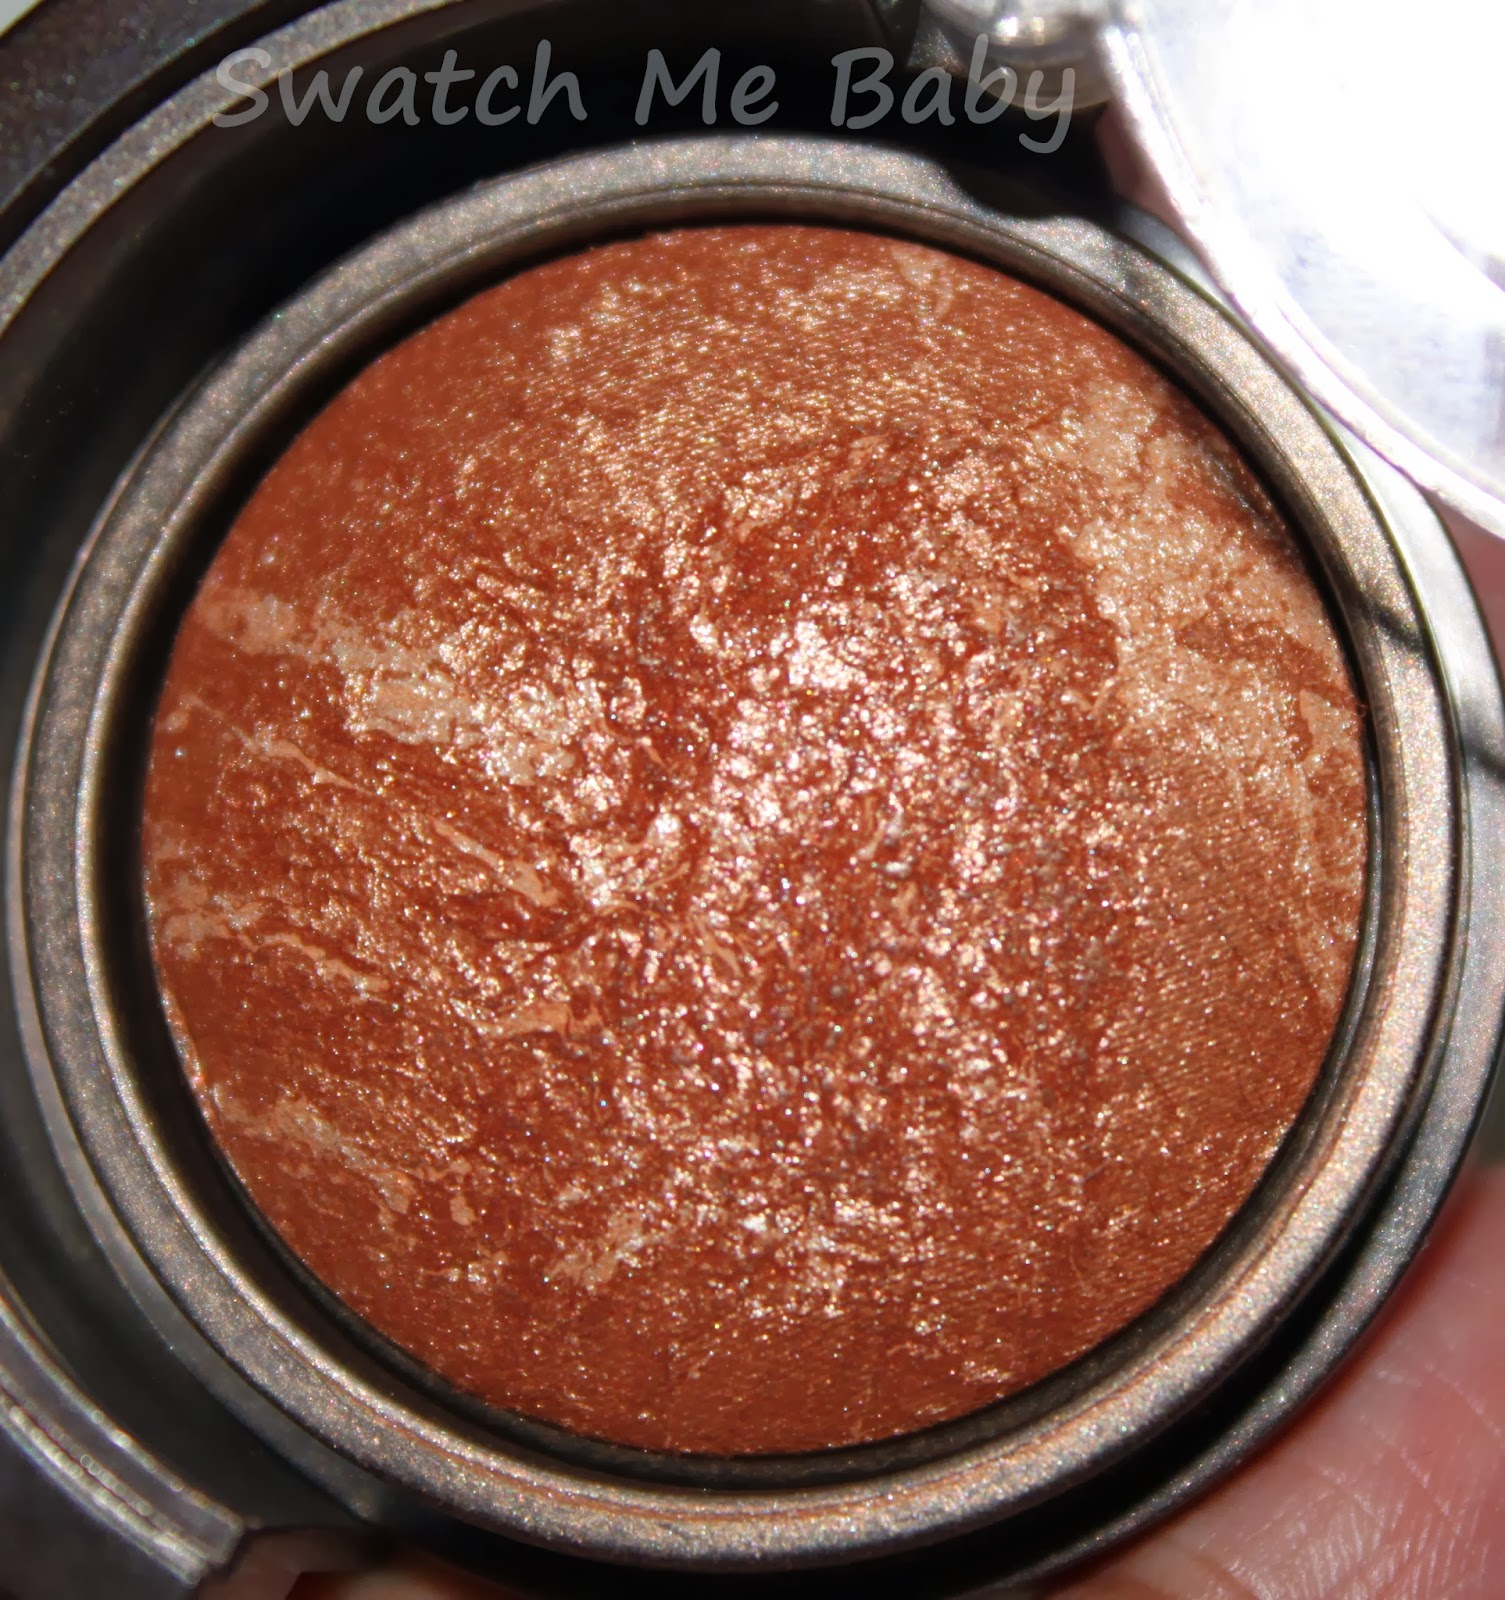 LORAC Travel-Size Tantalizer Baked Bronzer close up